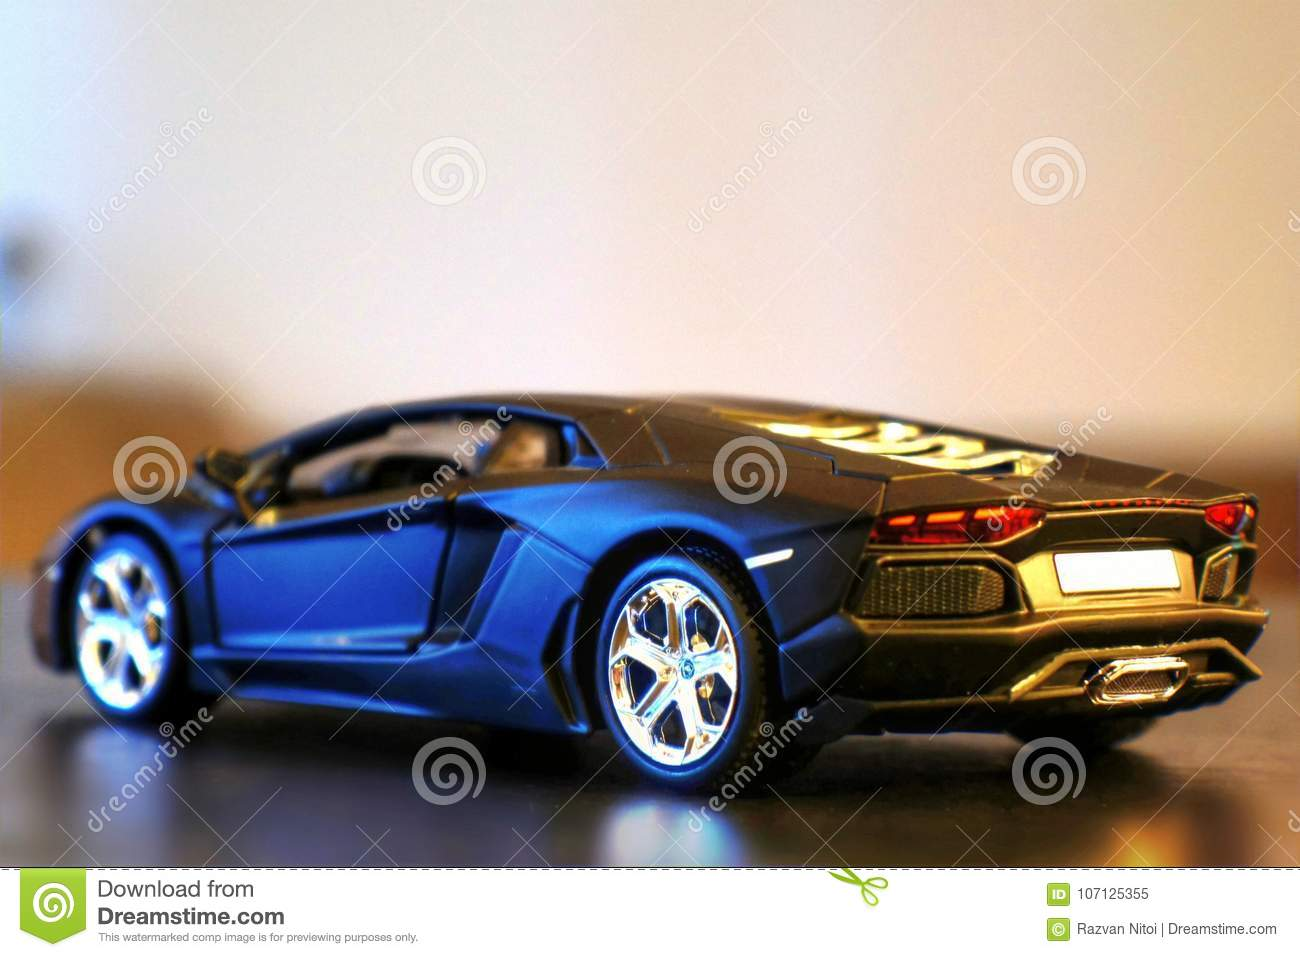 Lamborghini Aventador Lp700 4 Model Car Lateral Rear Editorial Image